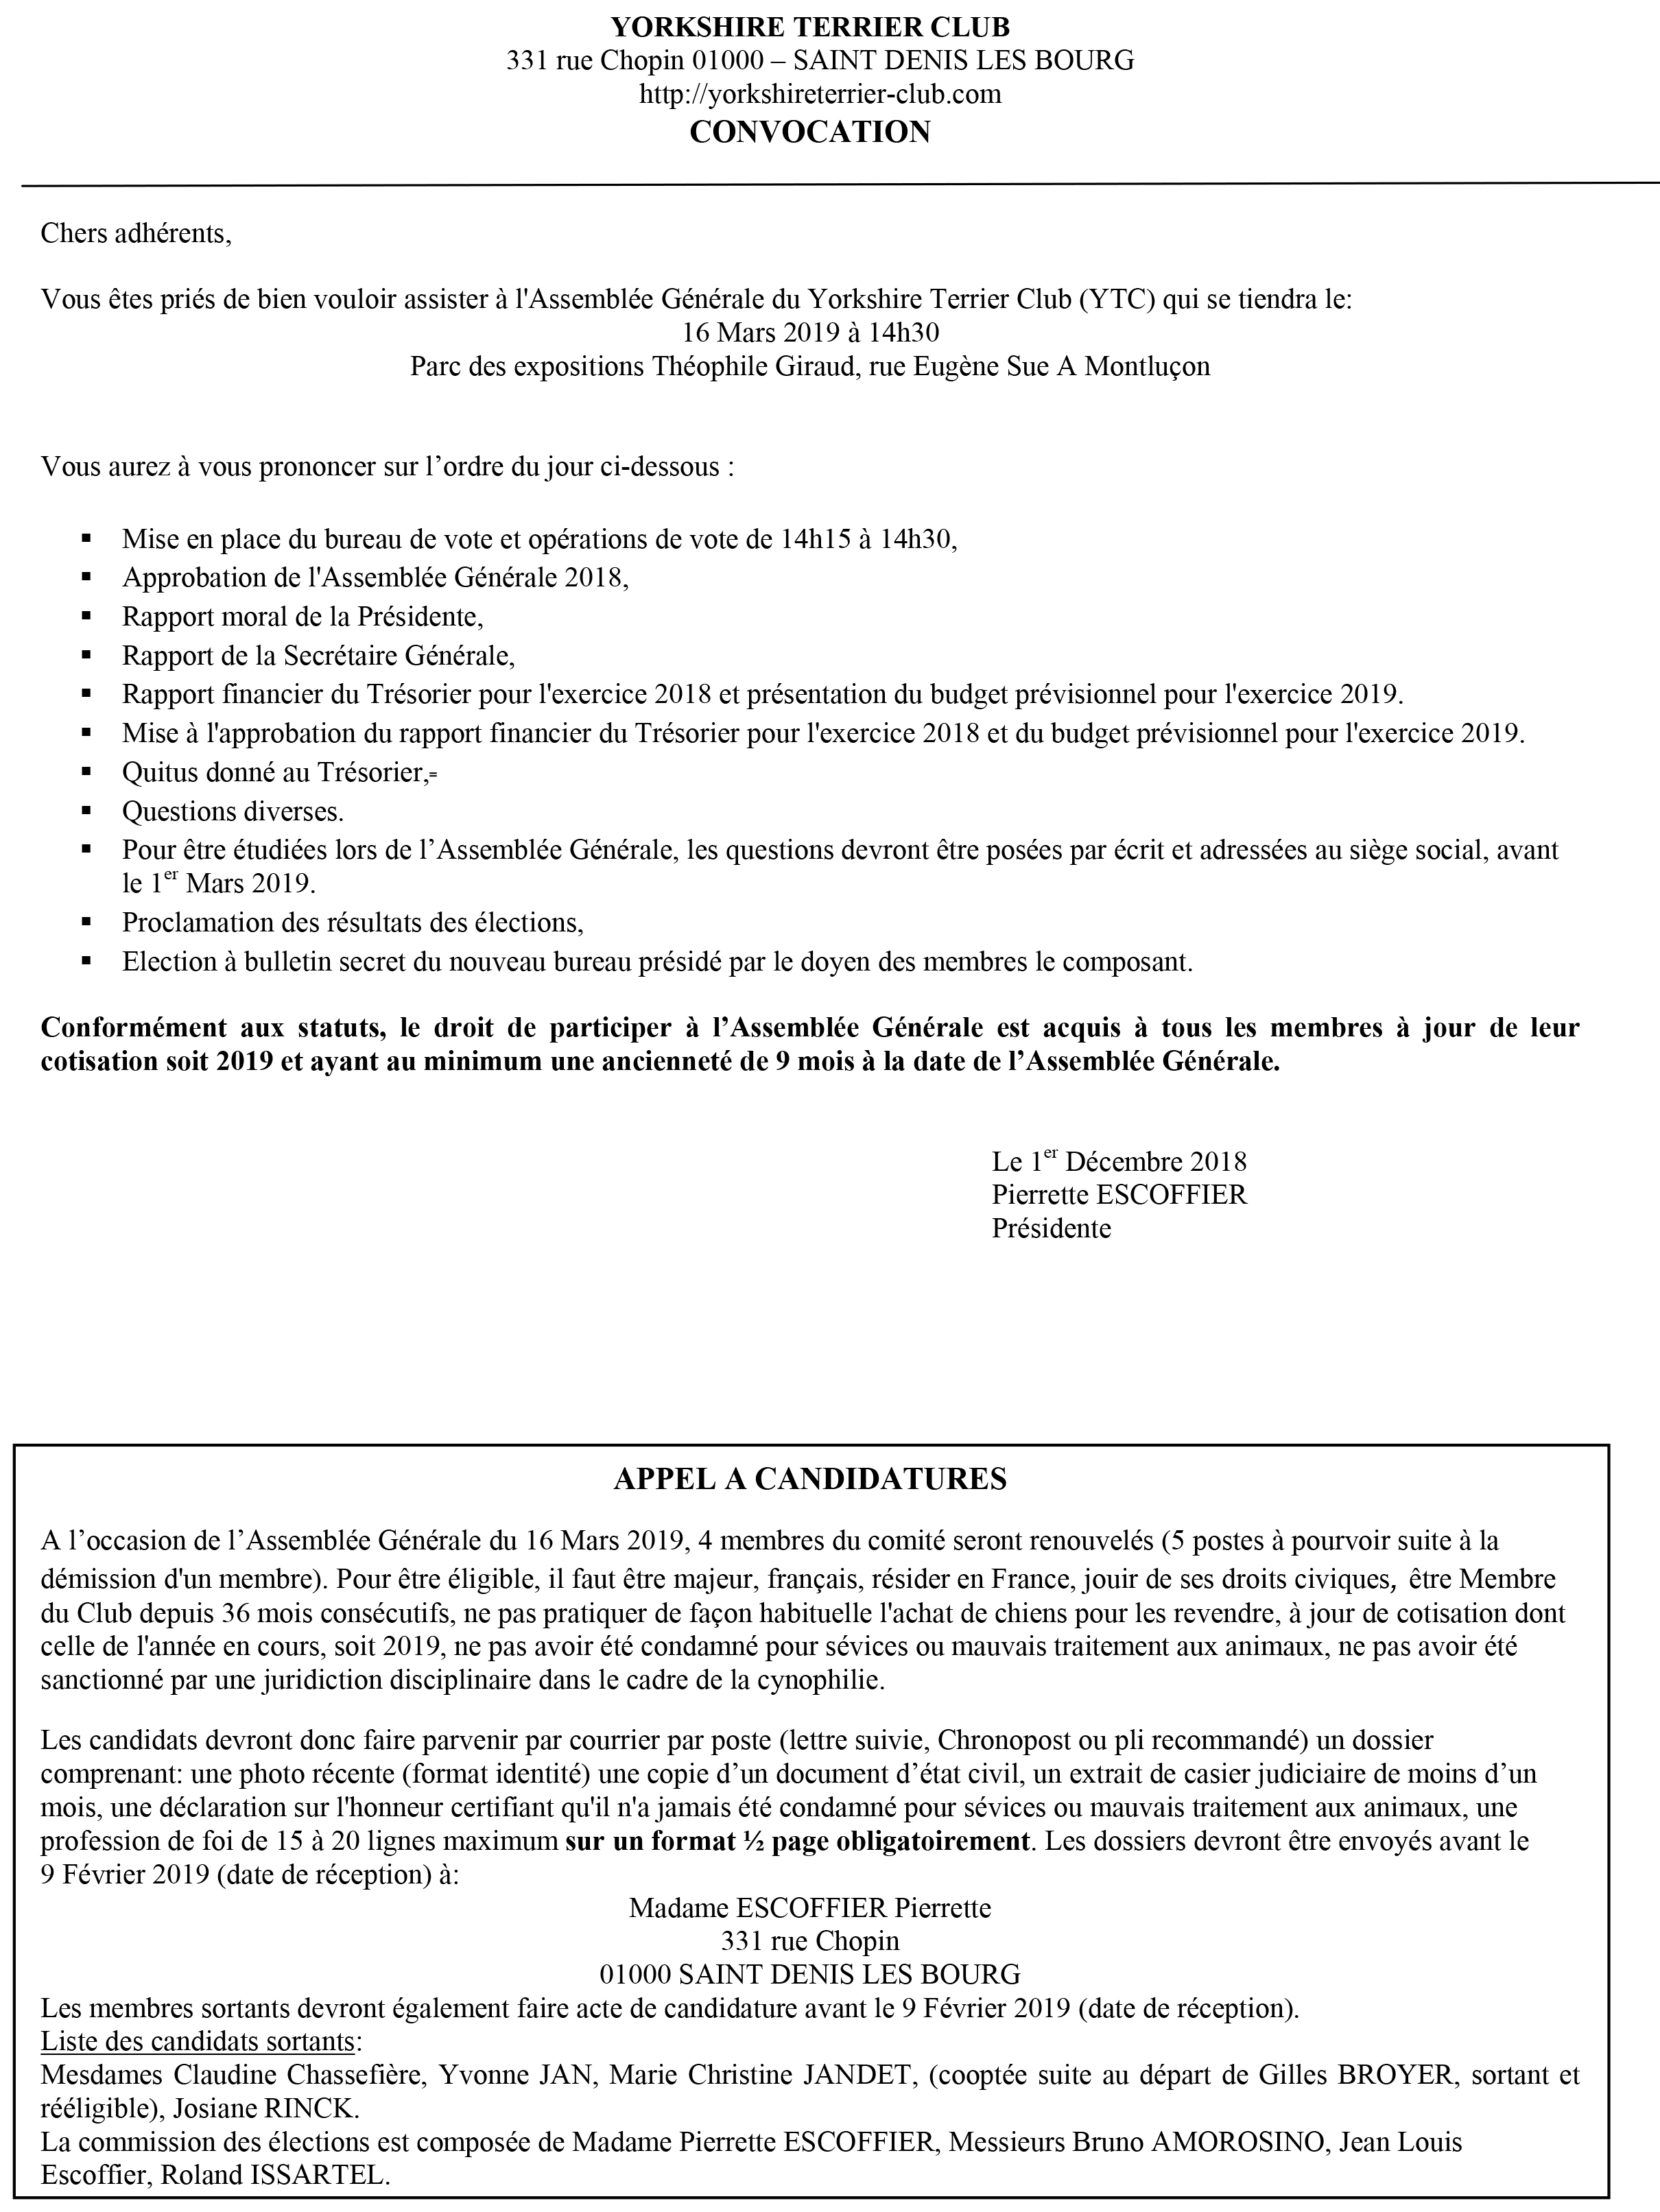 Microsoft Word - CONVOC AG  + APPEL CANDIDATURES YORKSHIRE.doc